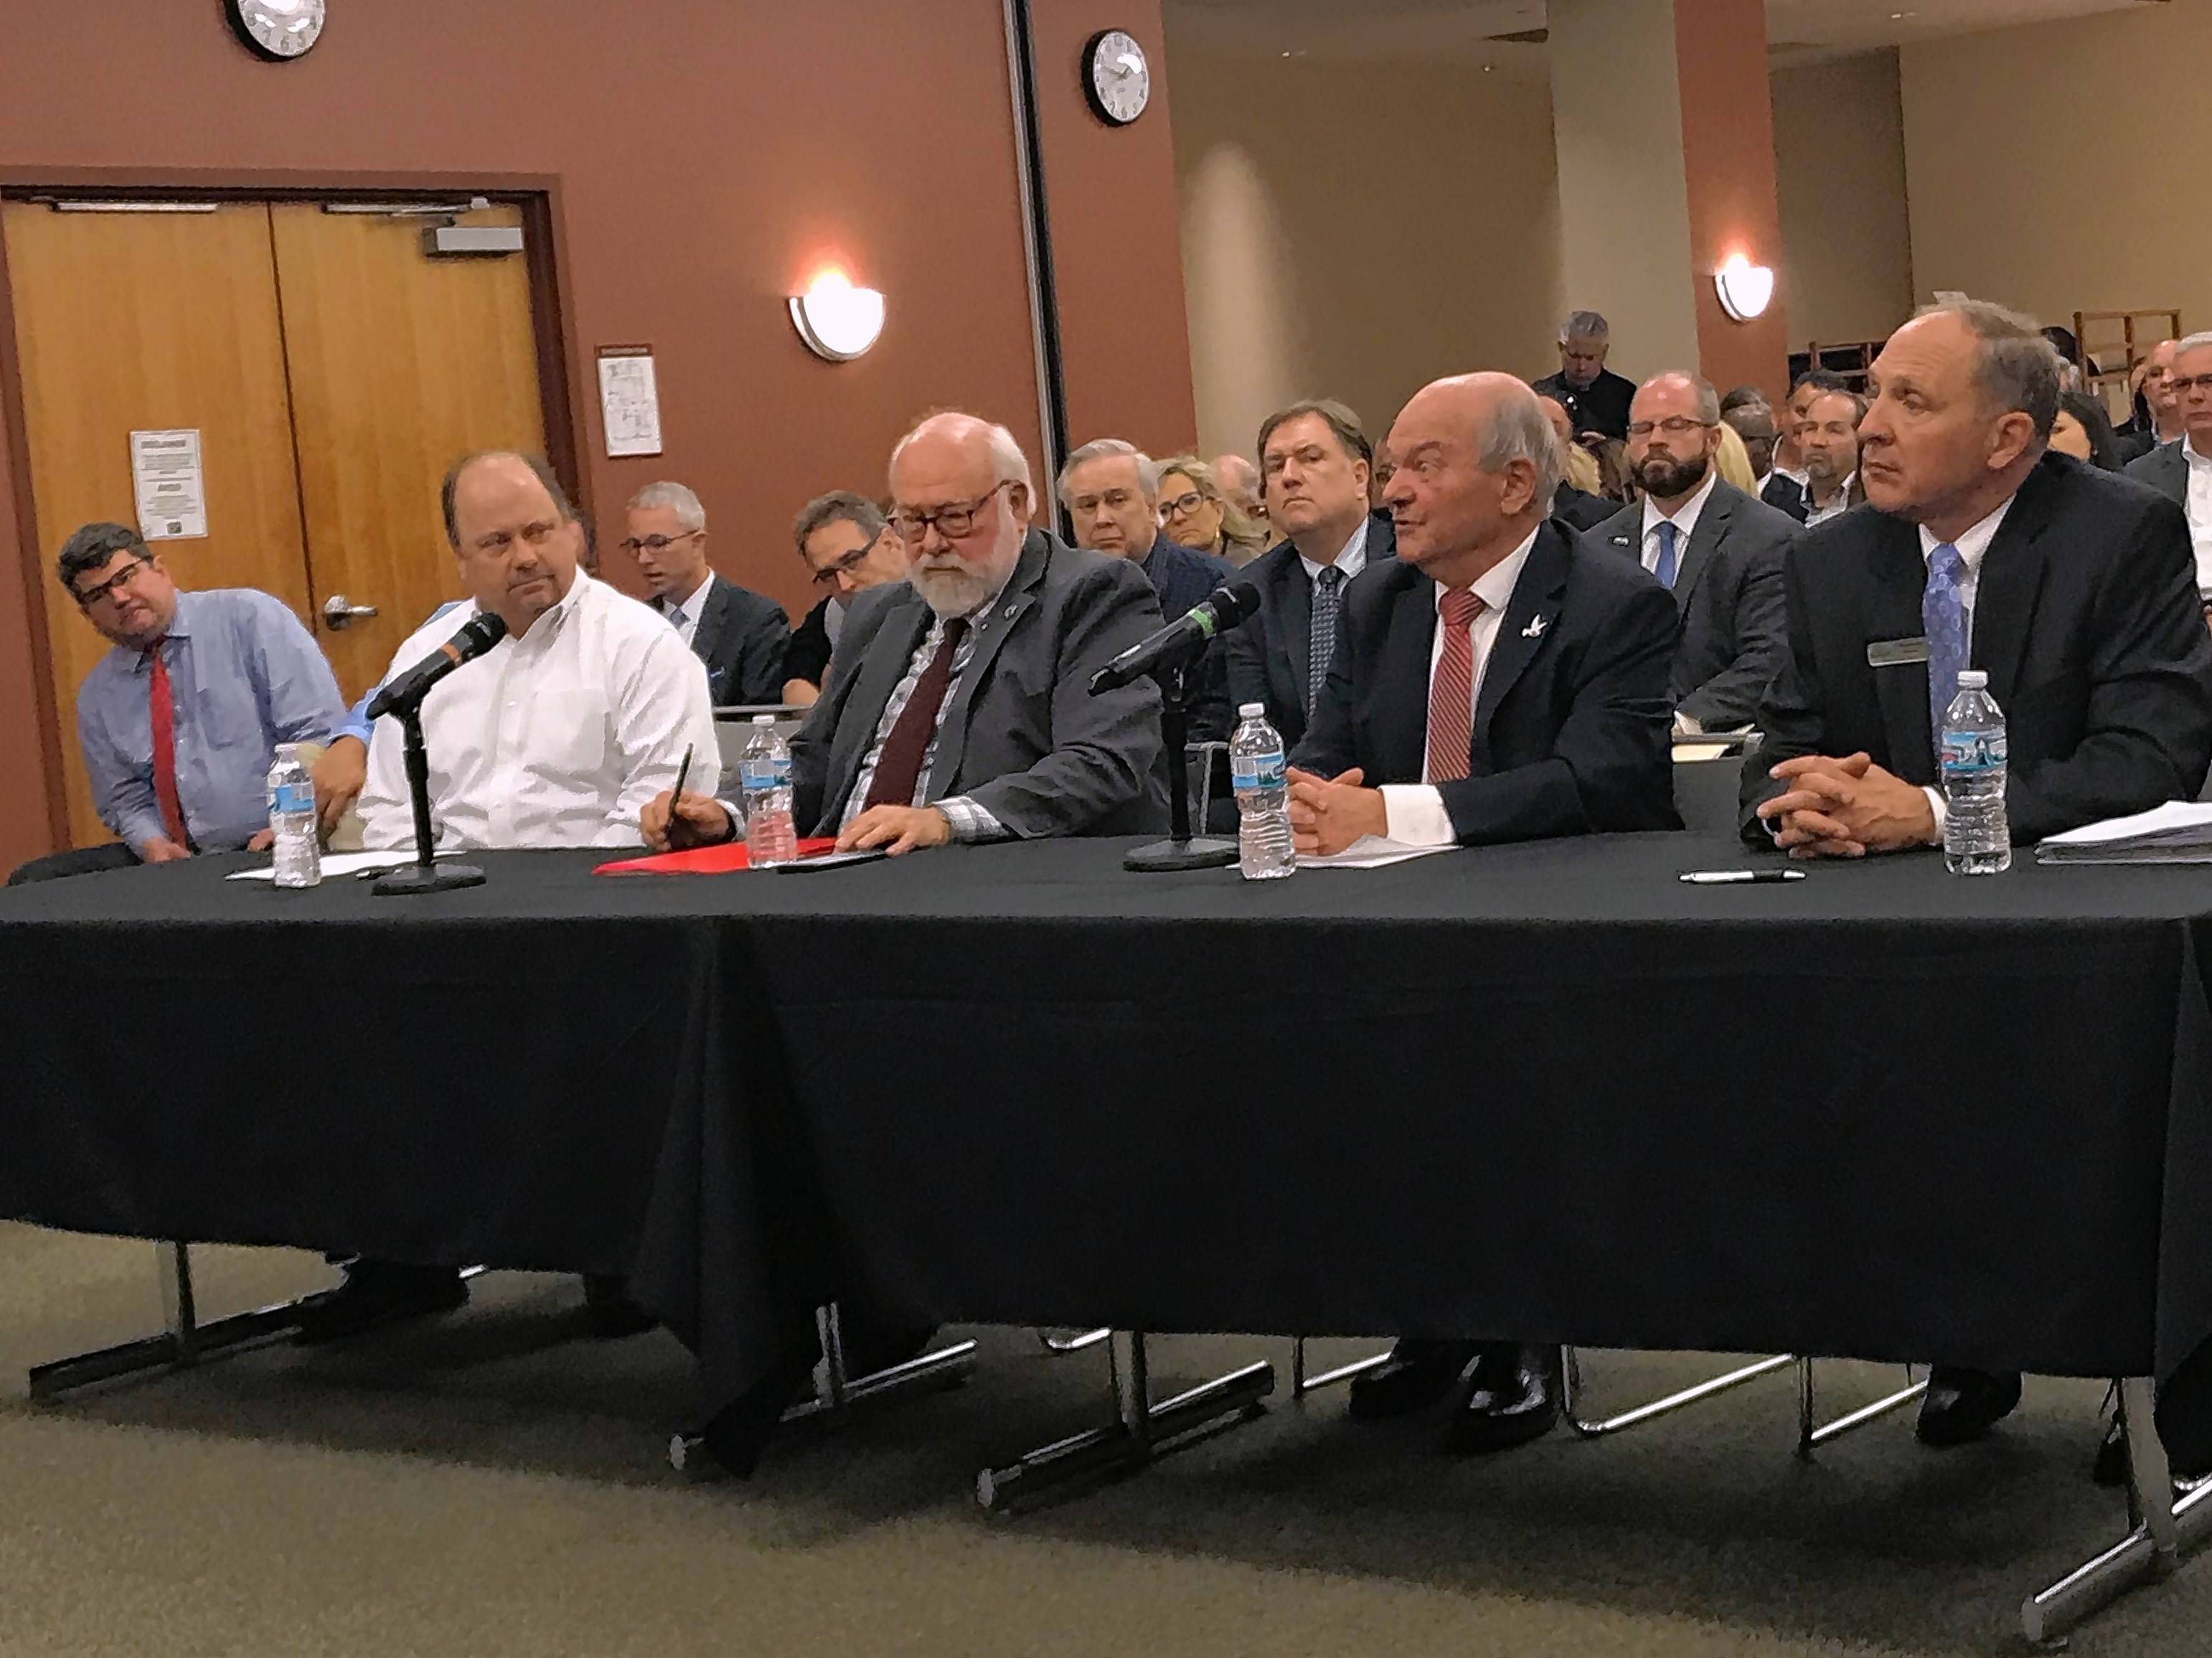 State capital bill hearing in Elgin: Fox Valley leaders list their wishes, ideas for funding